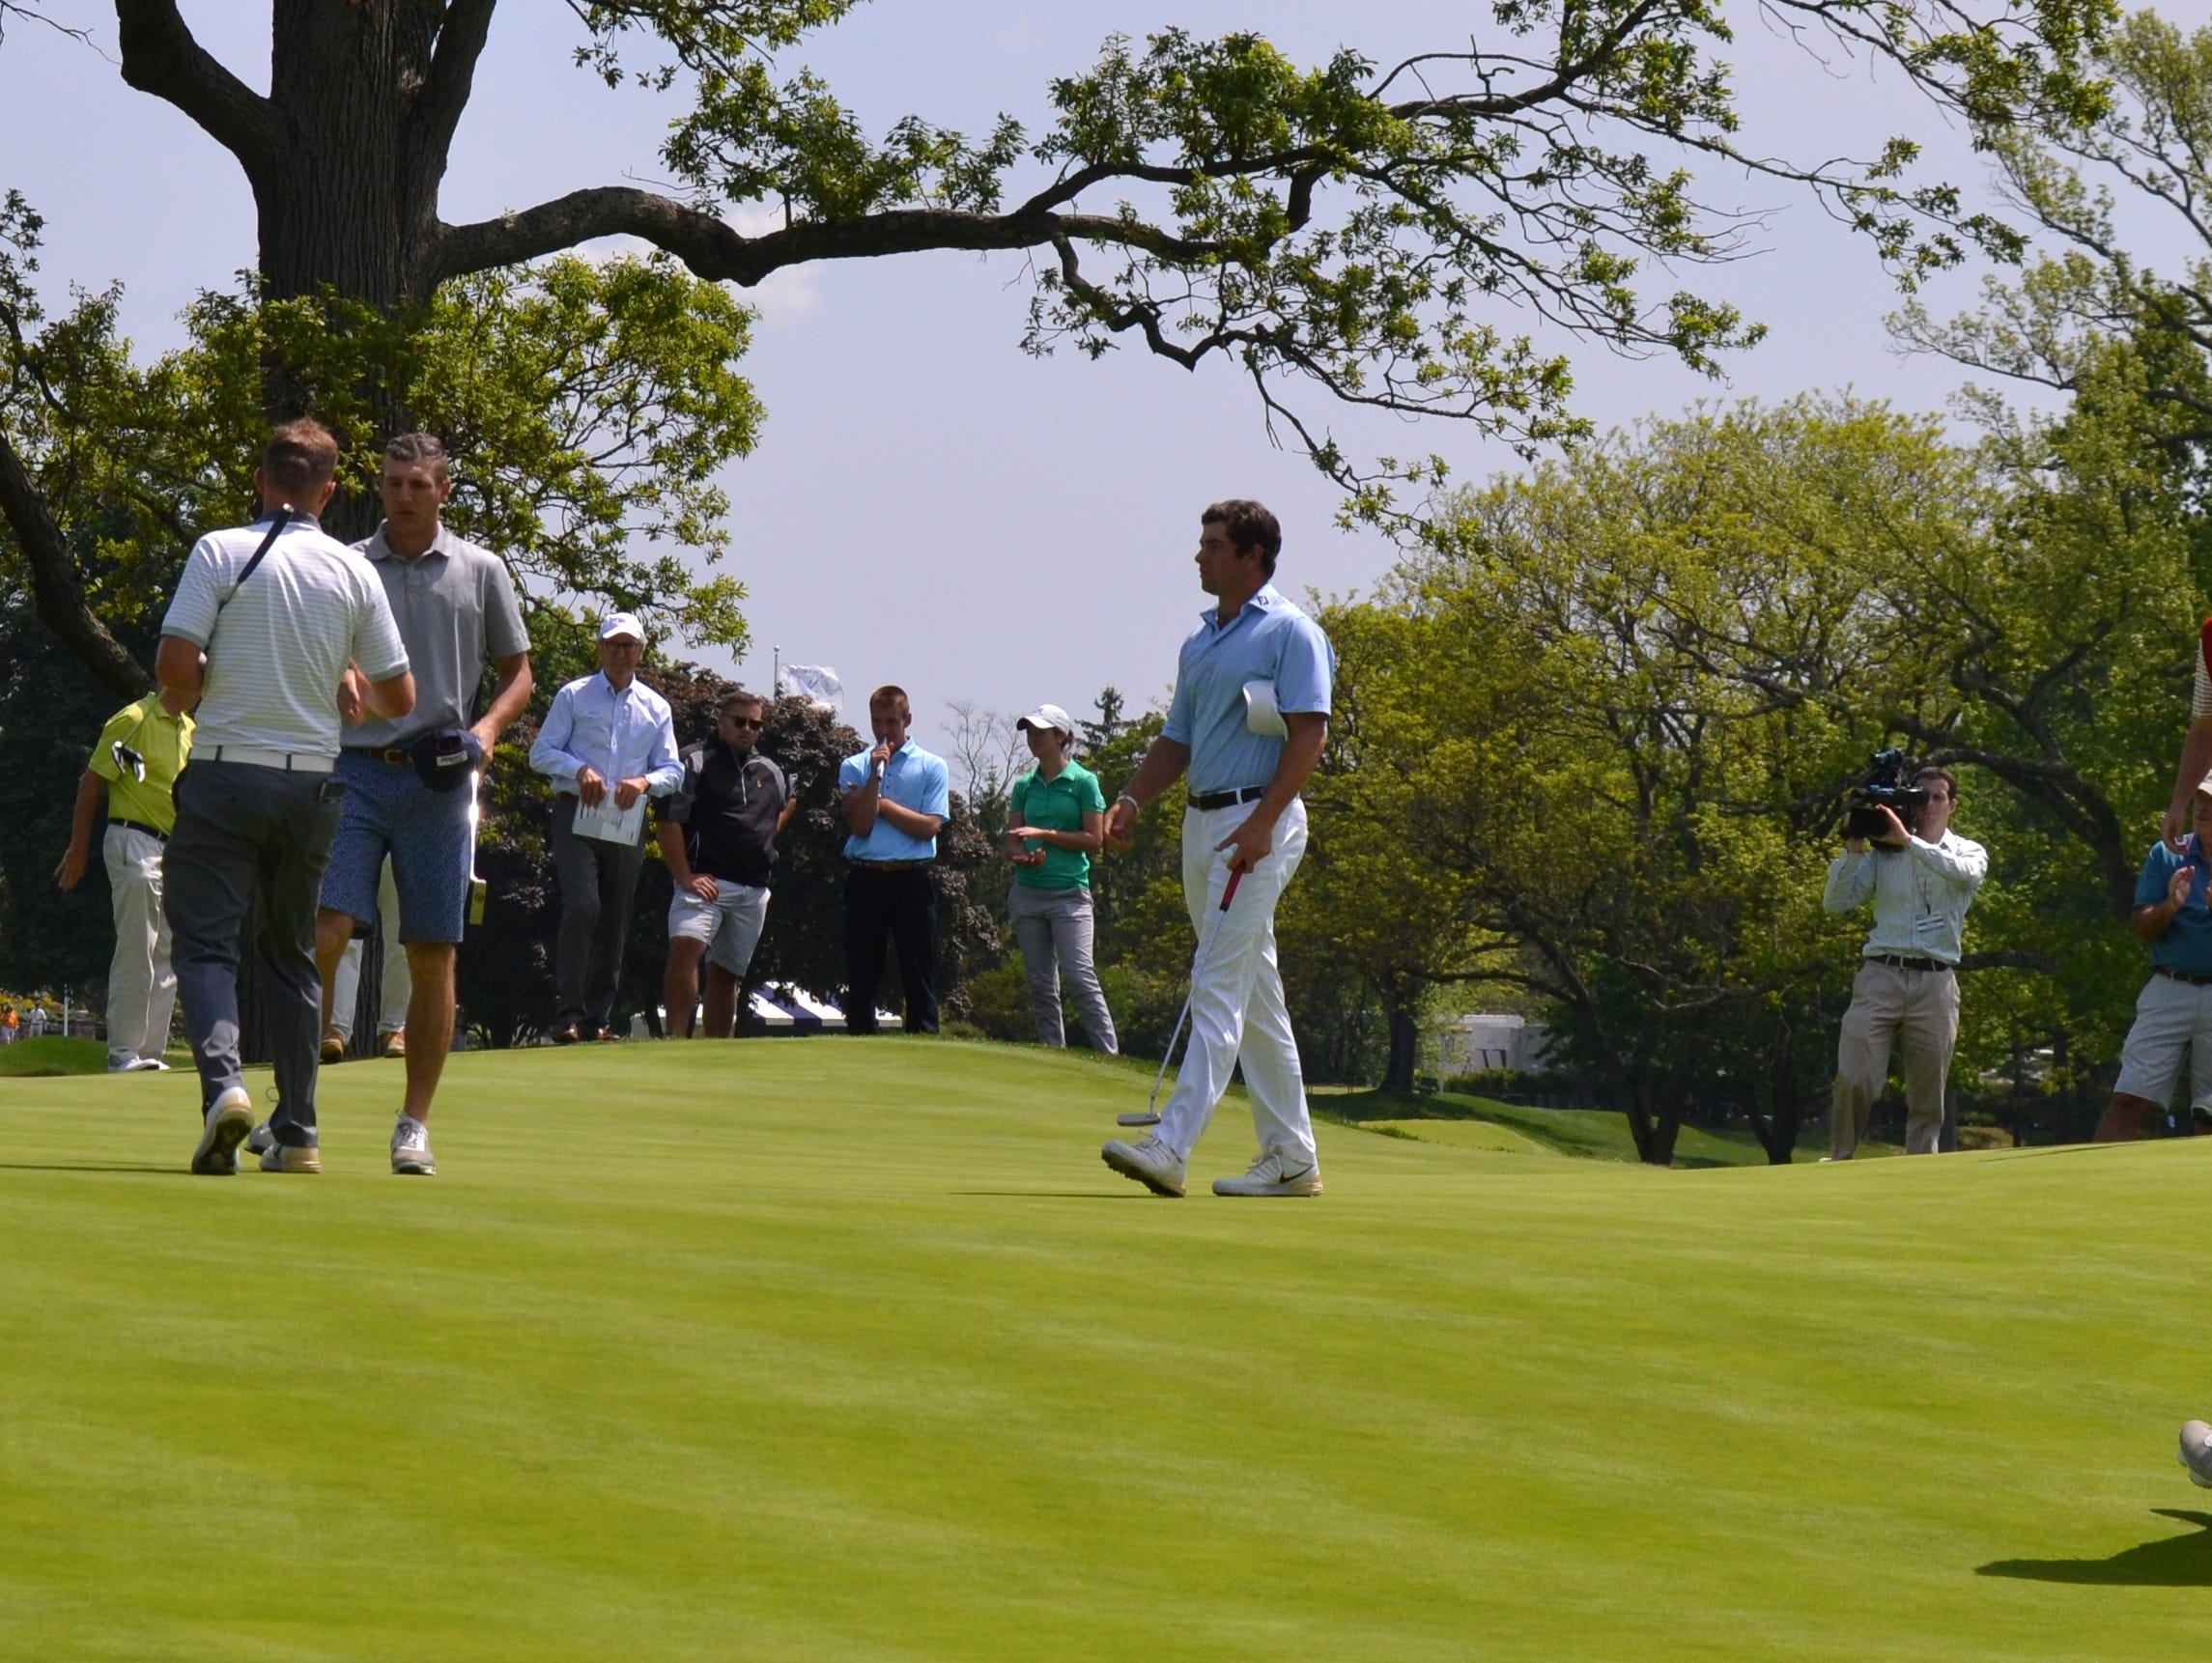 Paul McBride (left) and Garrett Rank shake hands while Cameron Young and Patrick Christovich approach to do the same after their Round of 32 match on Monday at the U.S. Four-Ball Championship at Winged Foot.